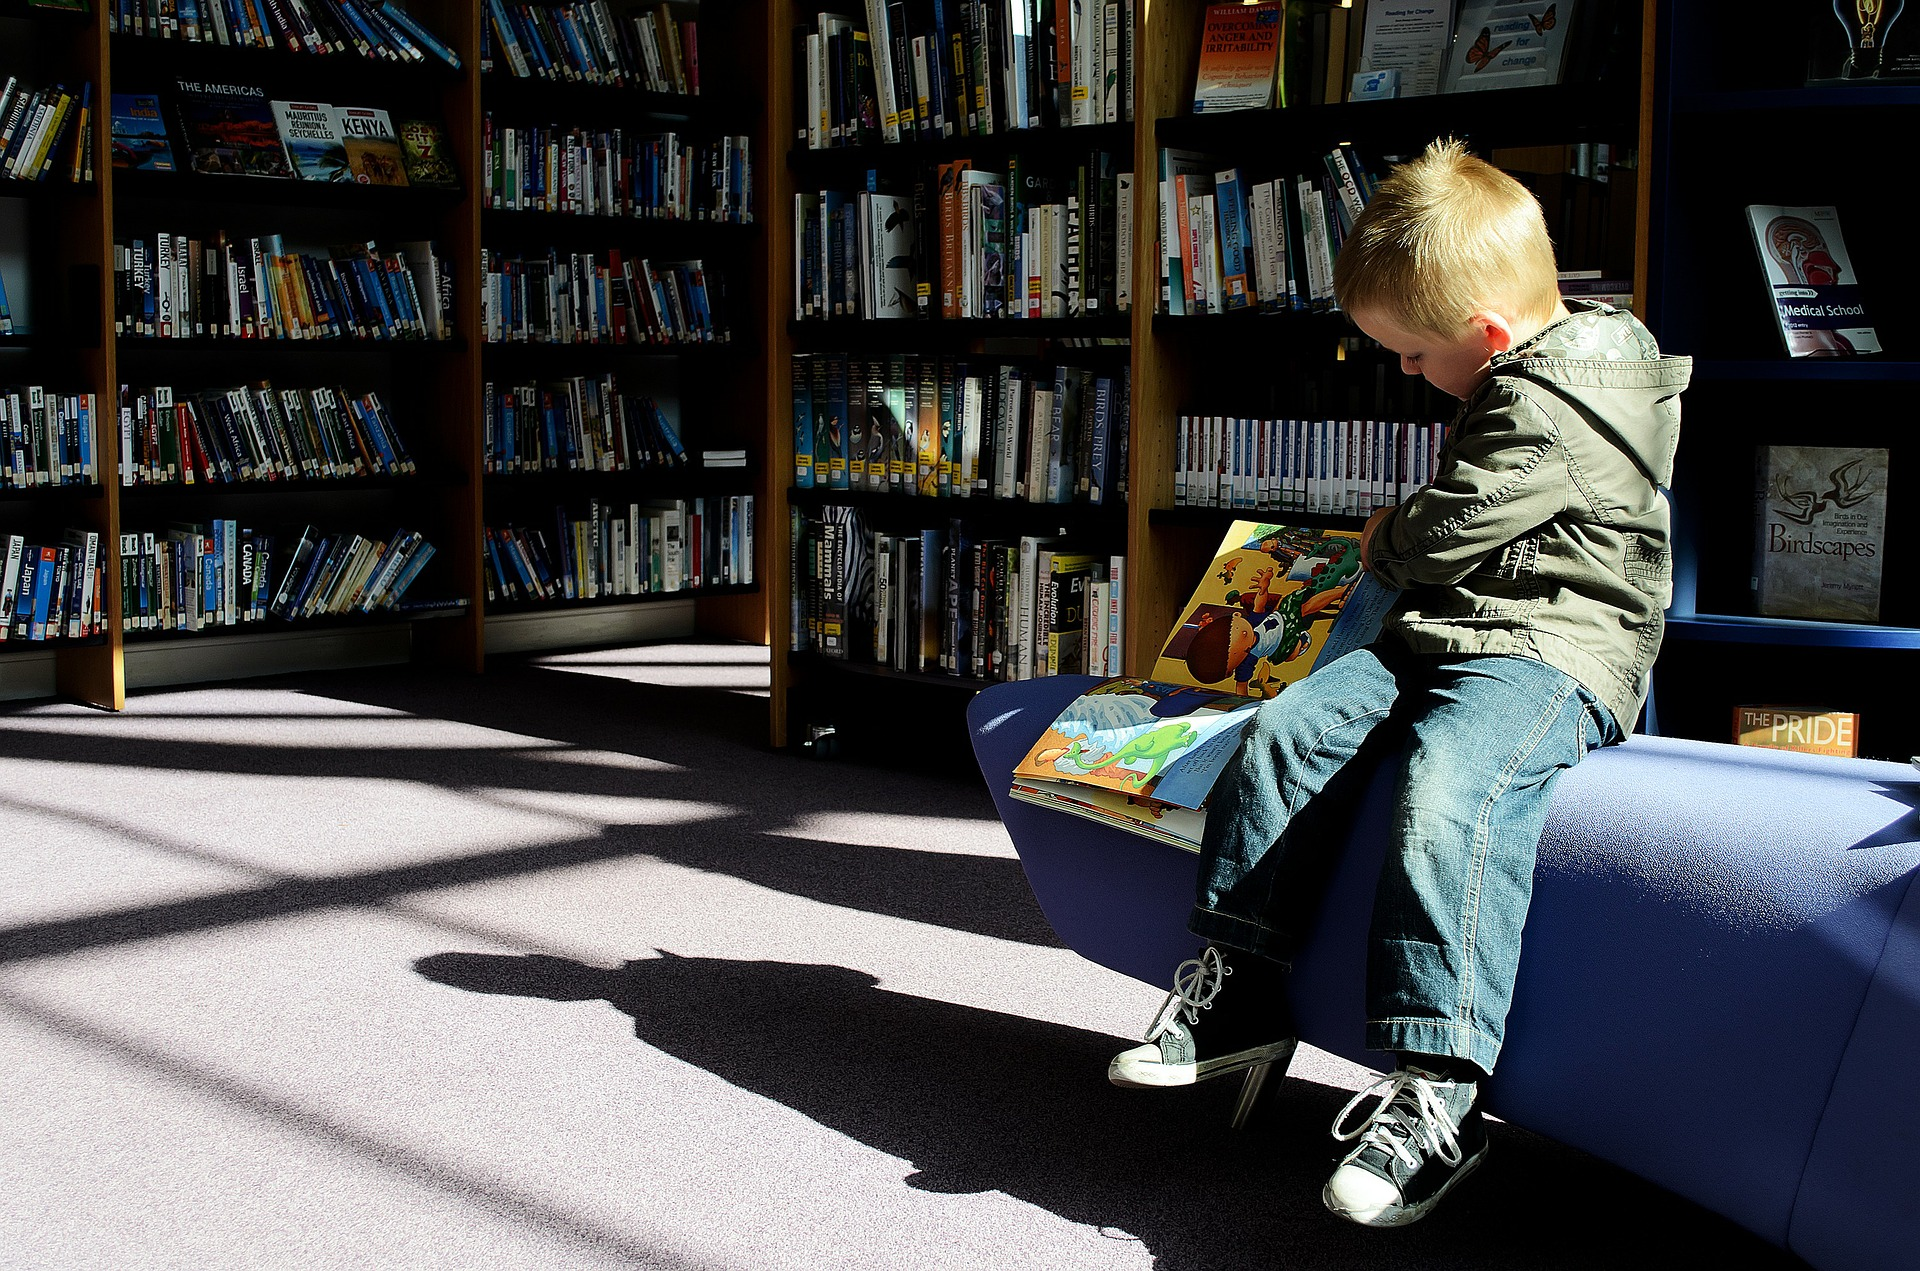 A boy reads a book in a library